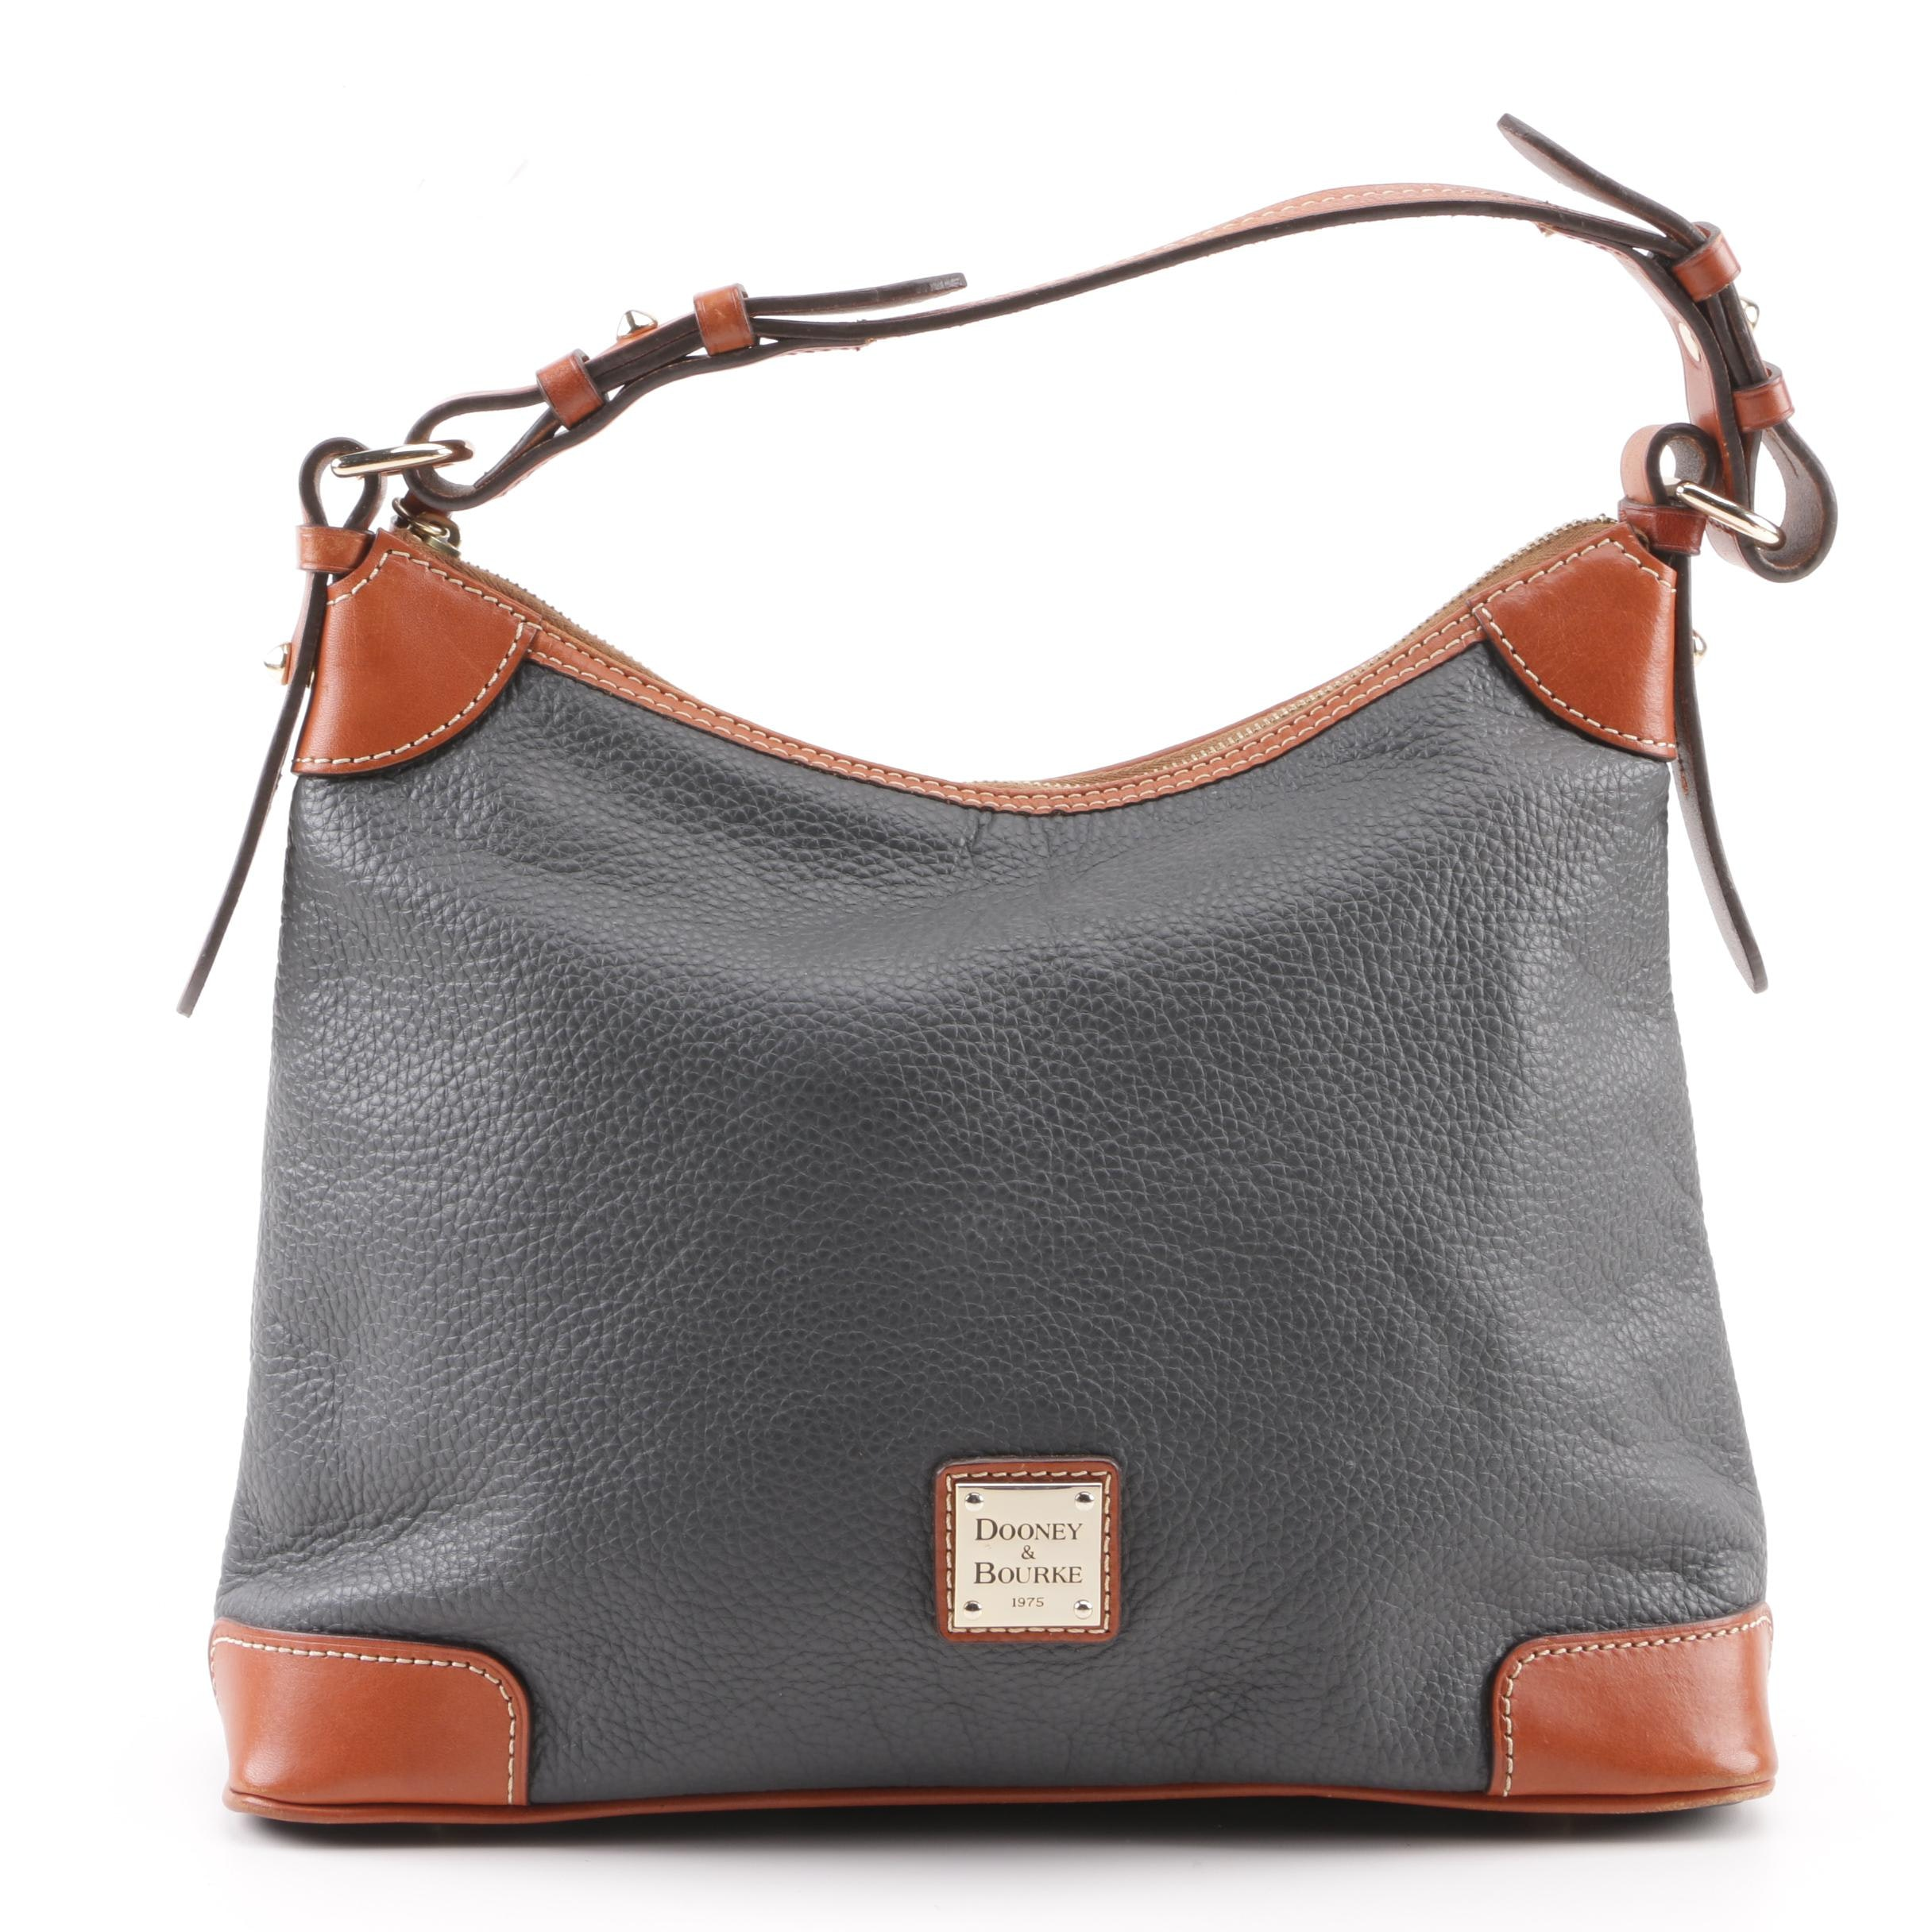 Dooney & Bourke Black and Cognac Leather Hobo Bag